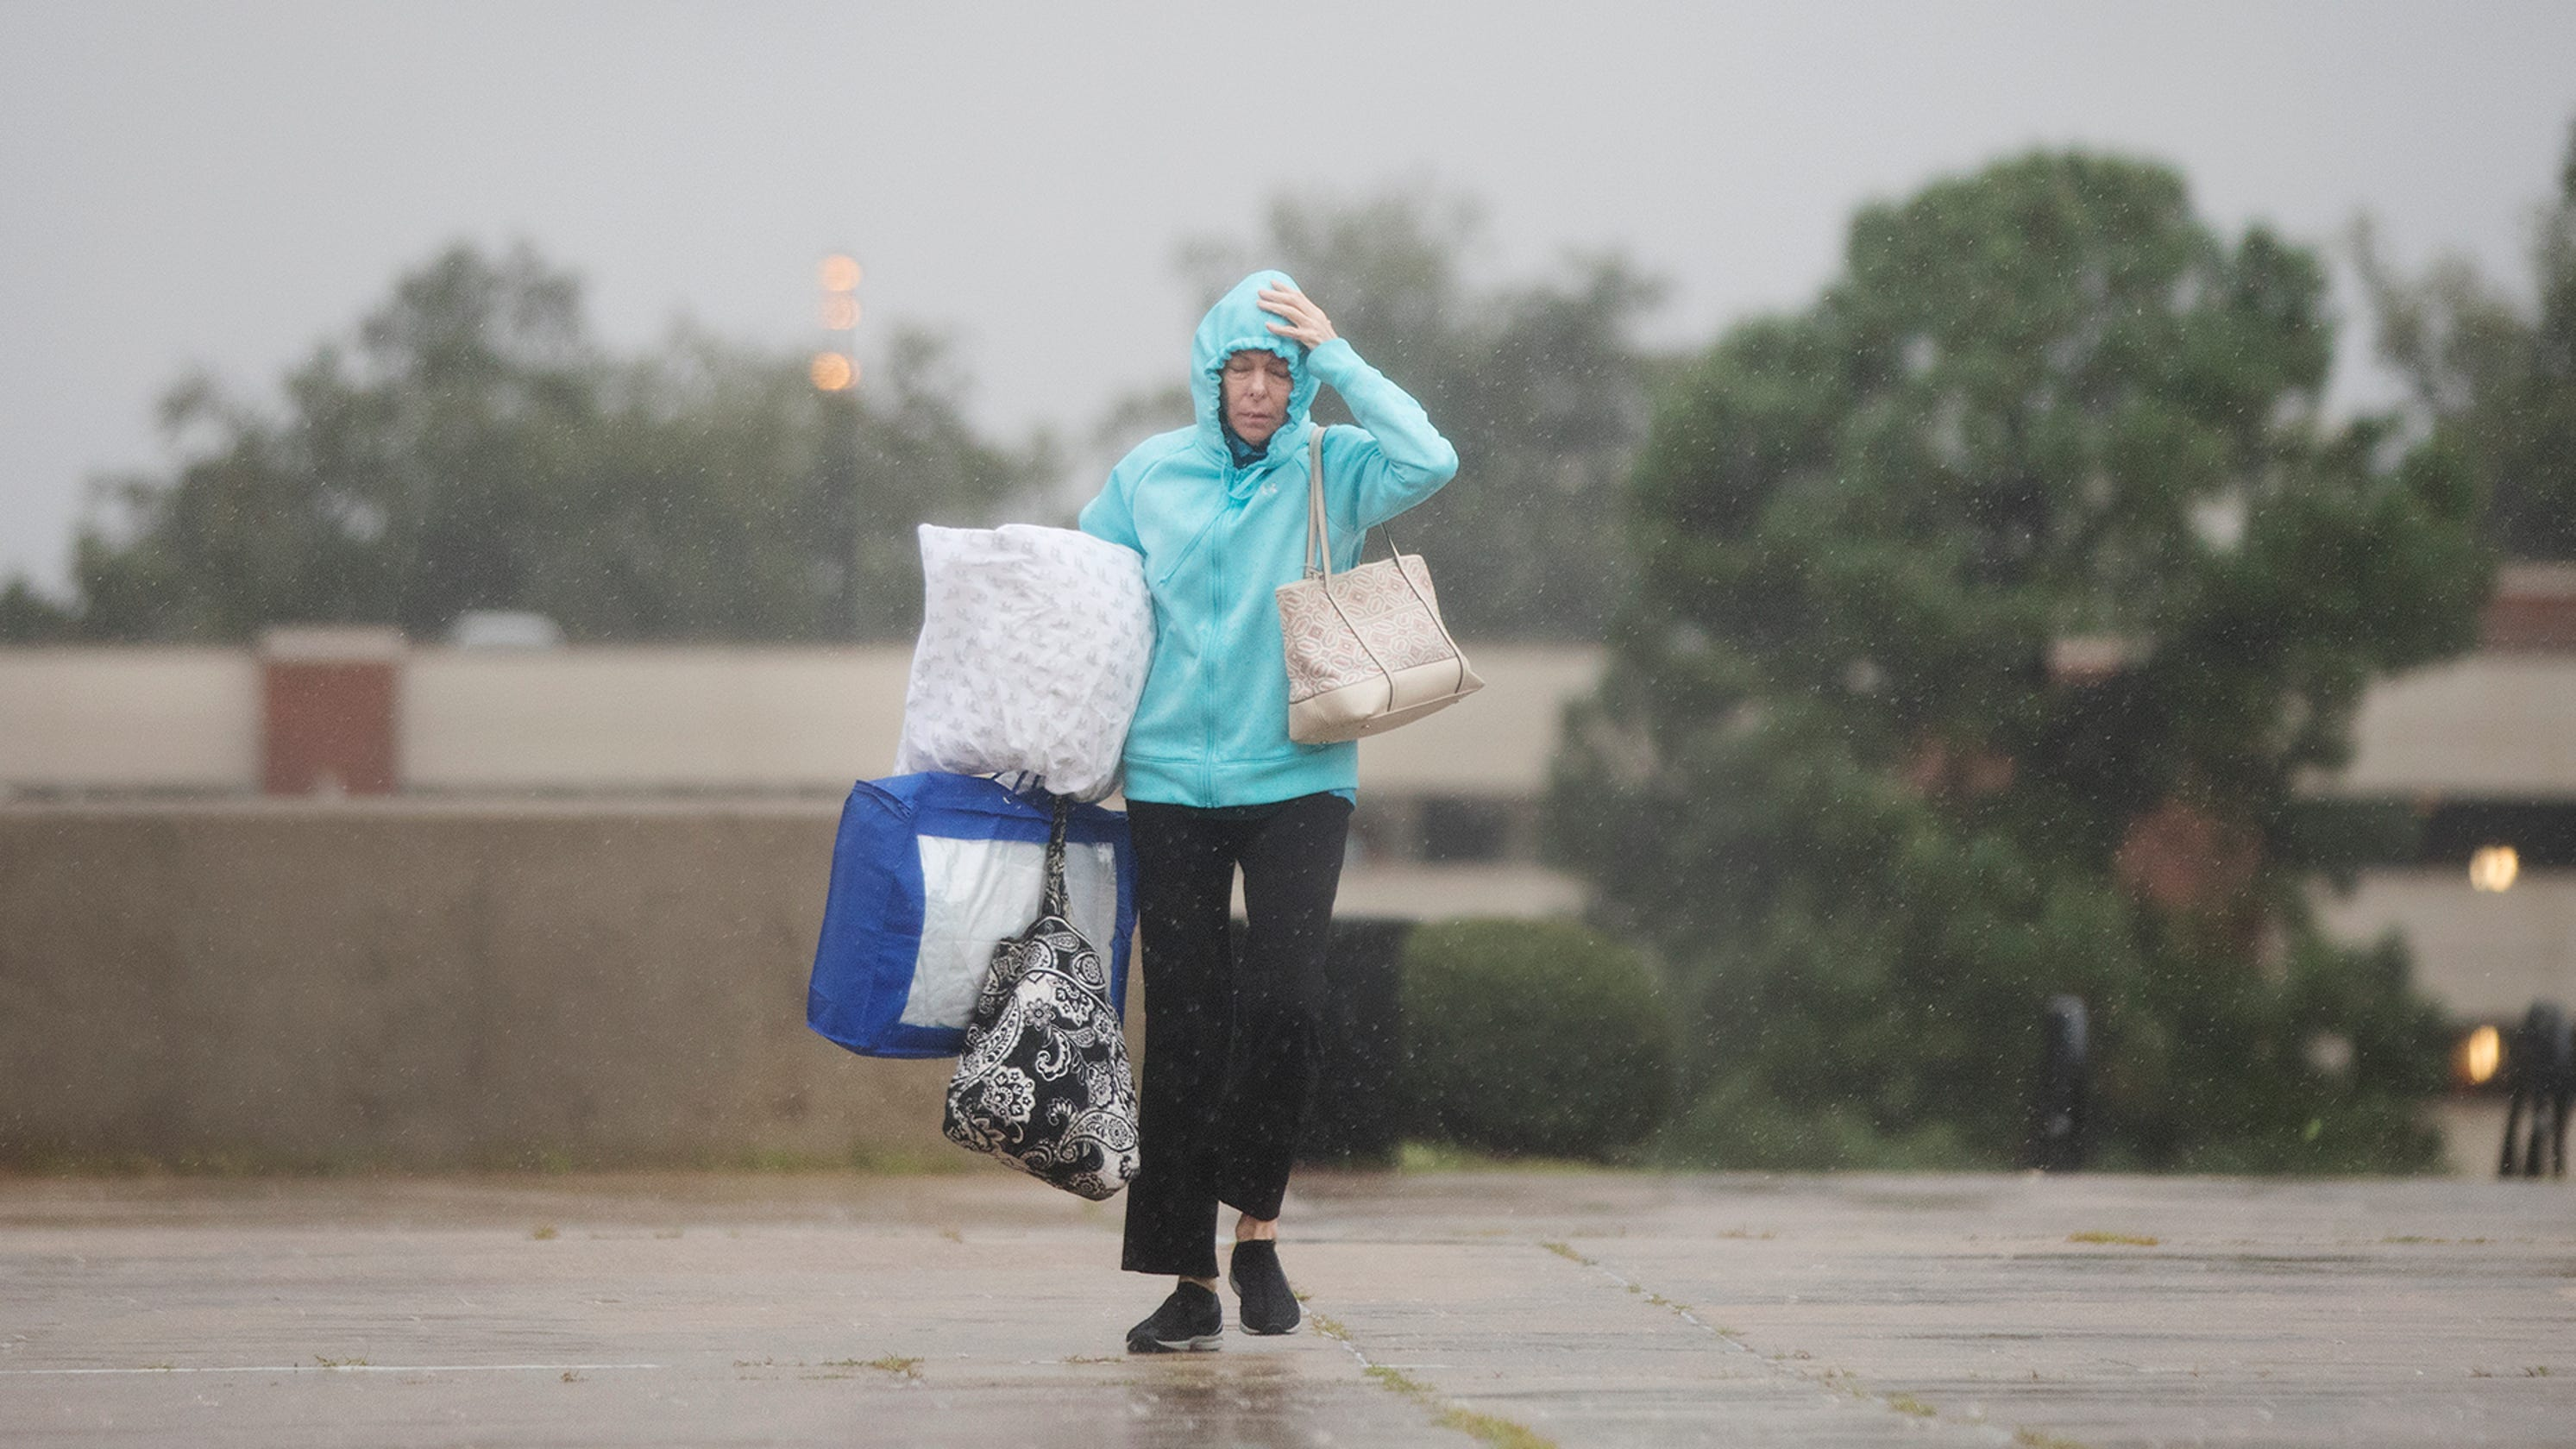 These videos show Hurricane Michael's wrath as it hits Florida's Panhandle, Big Bend